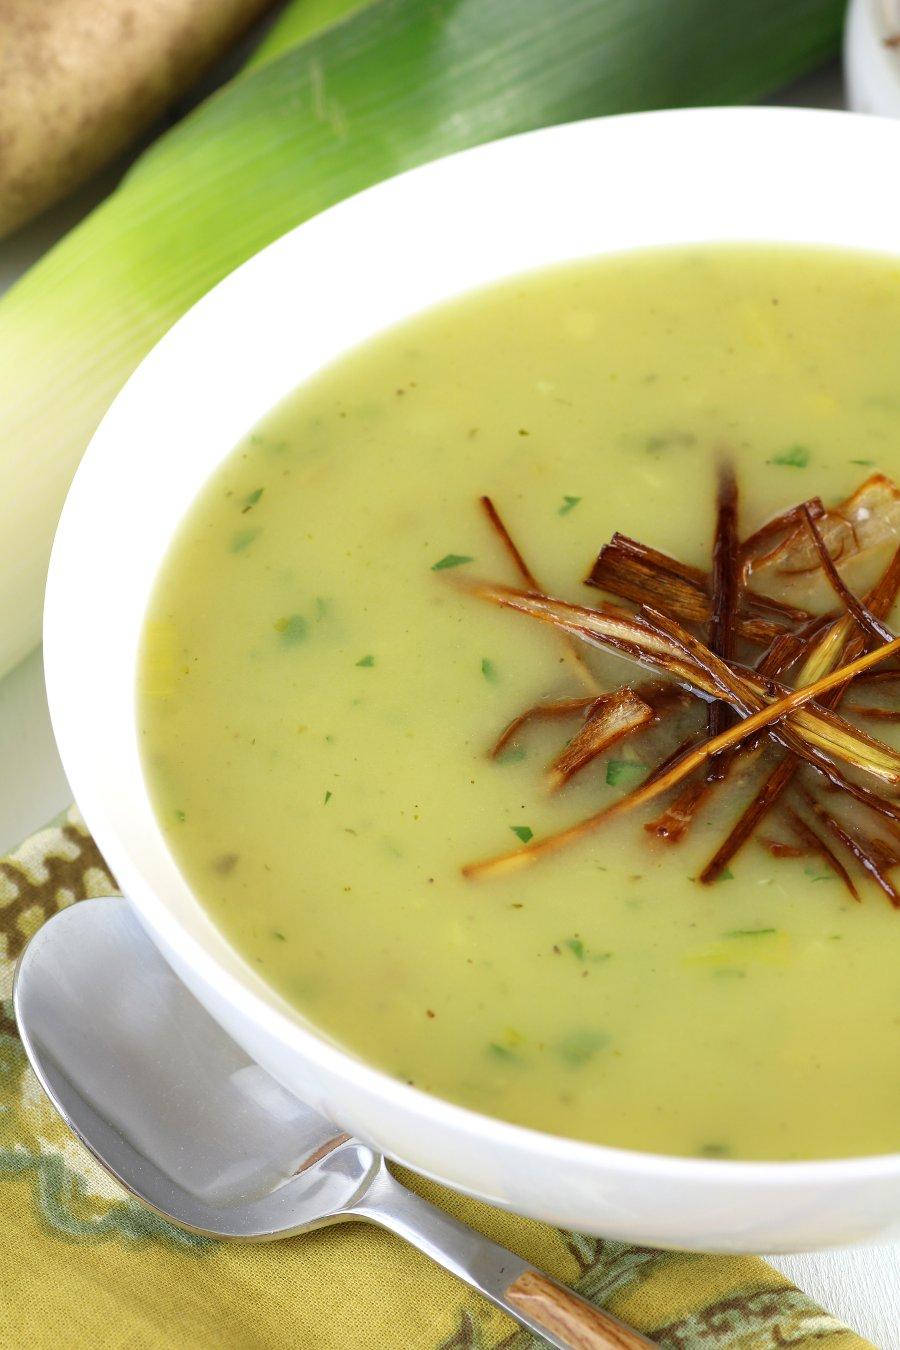 This velvety Vegan Potato and Leek Soup is a quick and easy soup that employs the natural creaminess of potatoes. Gluten-free and nut-free, too!